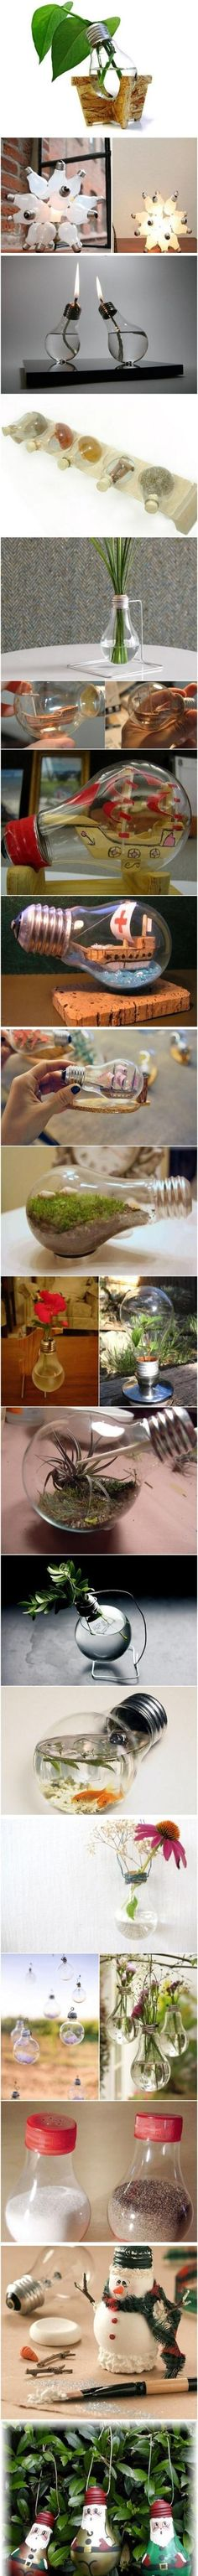 Recycle your burned out bulbs into something fun.